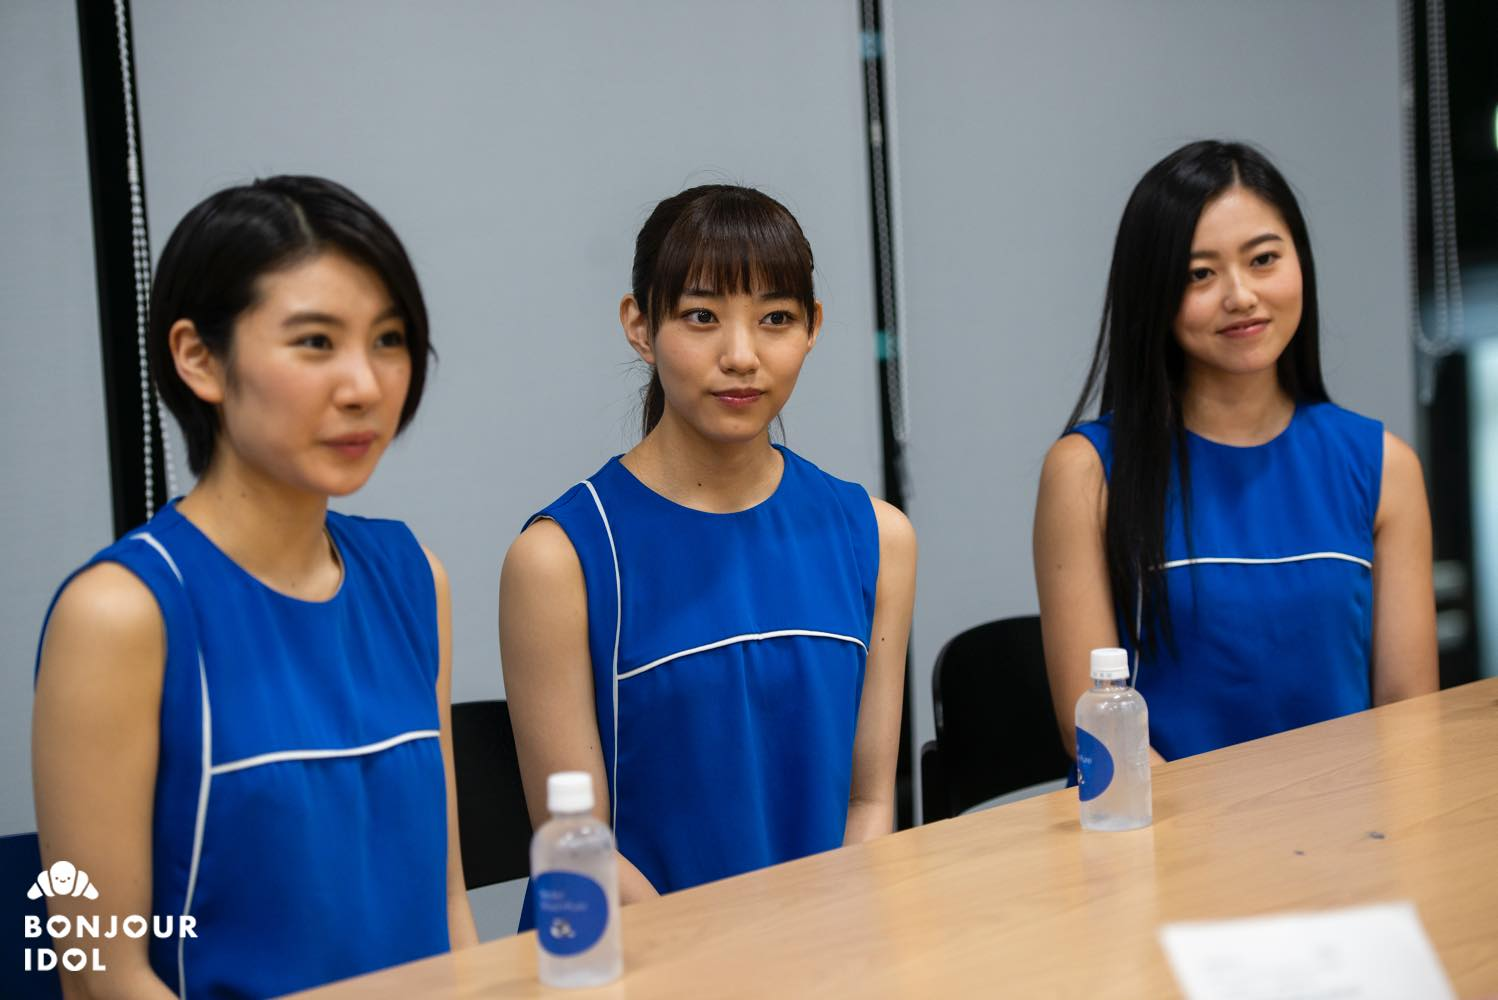 Bonjour Idol callme interview group photo